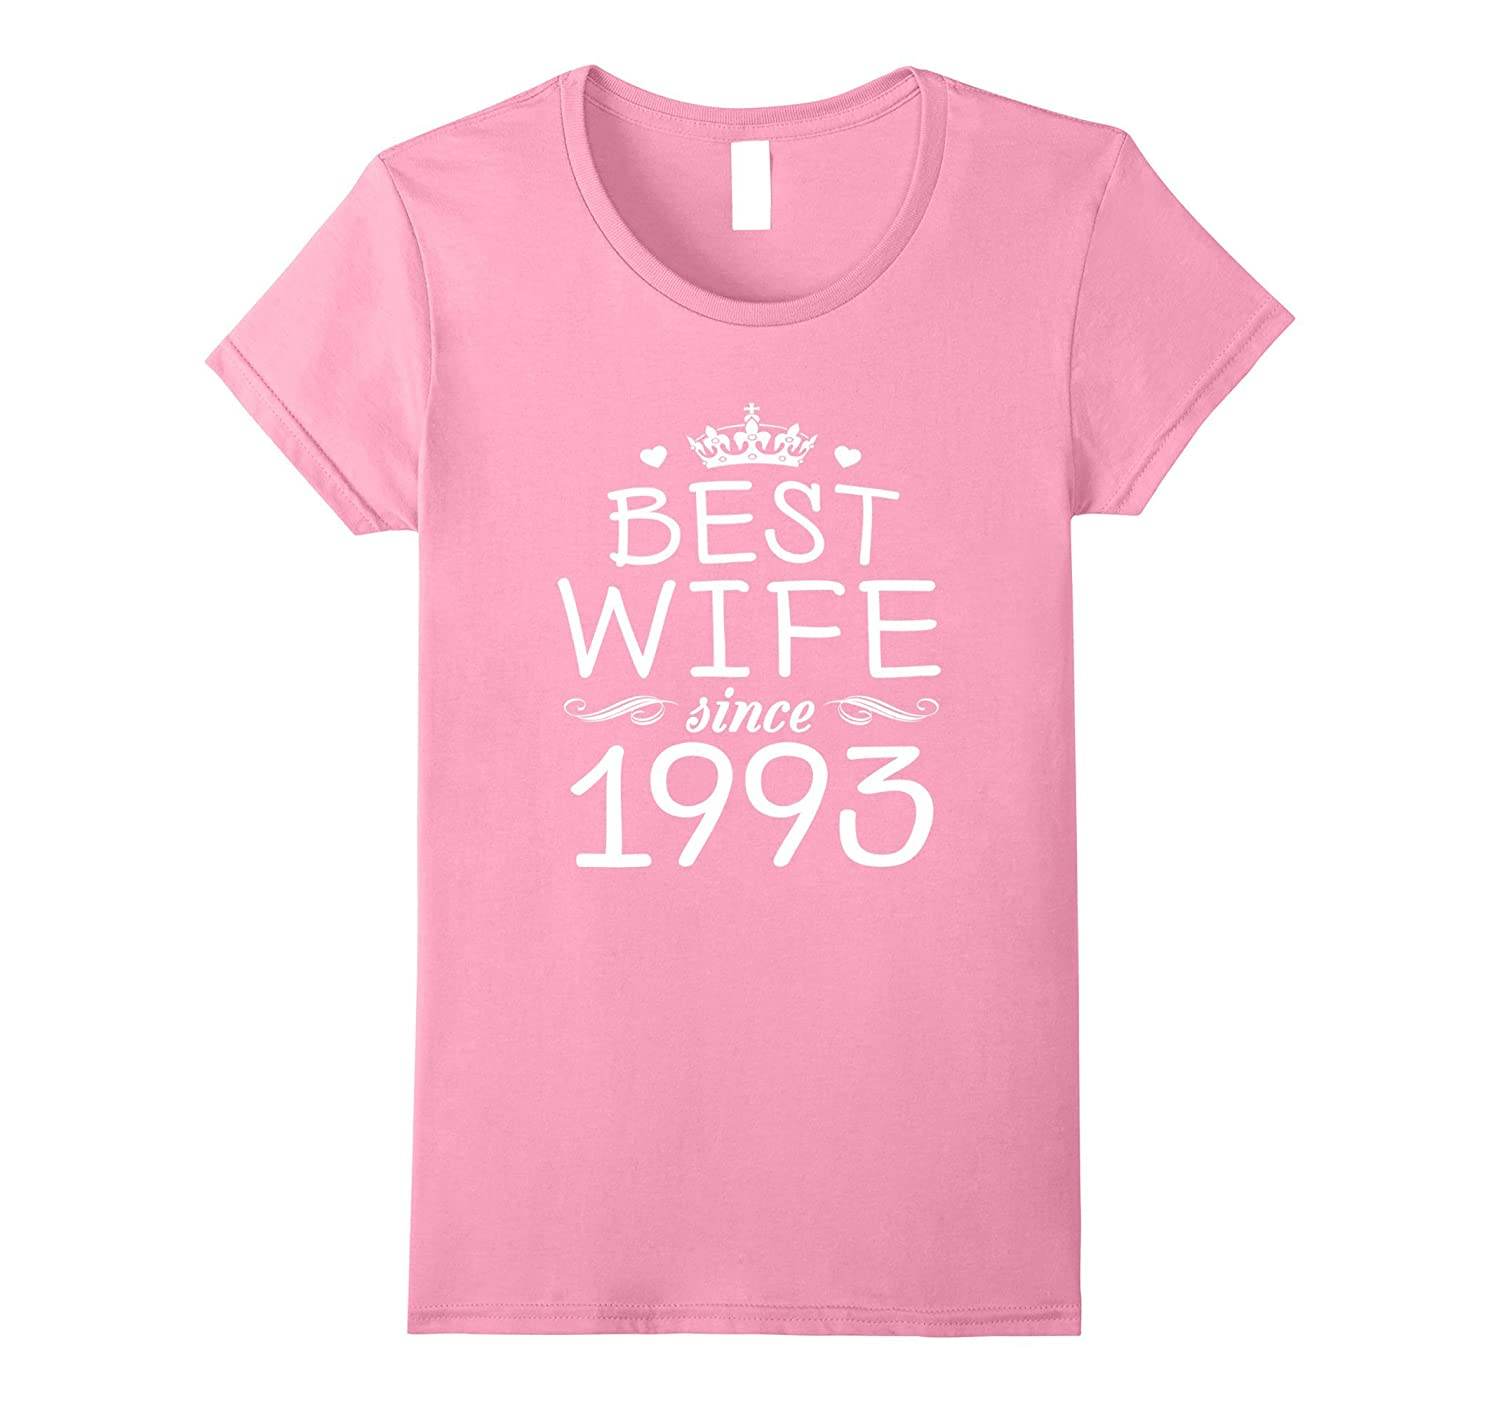 24th Wedding Anniversary Gift Ideas For Her-Wife Since 1993